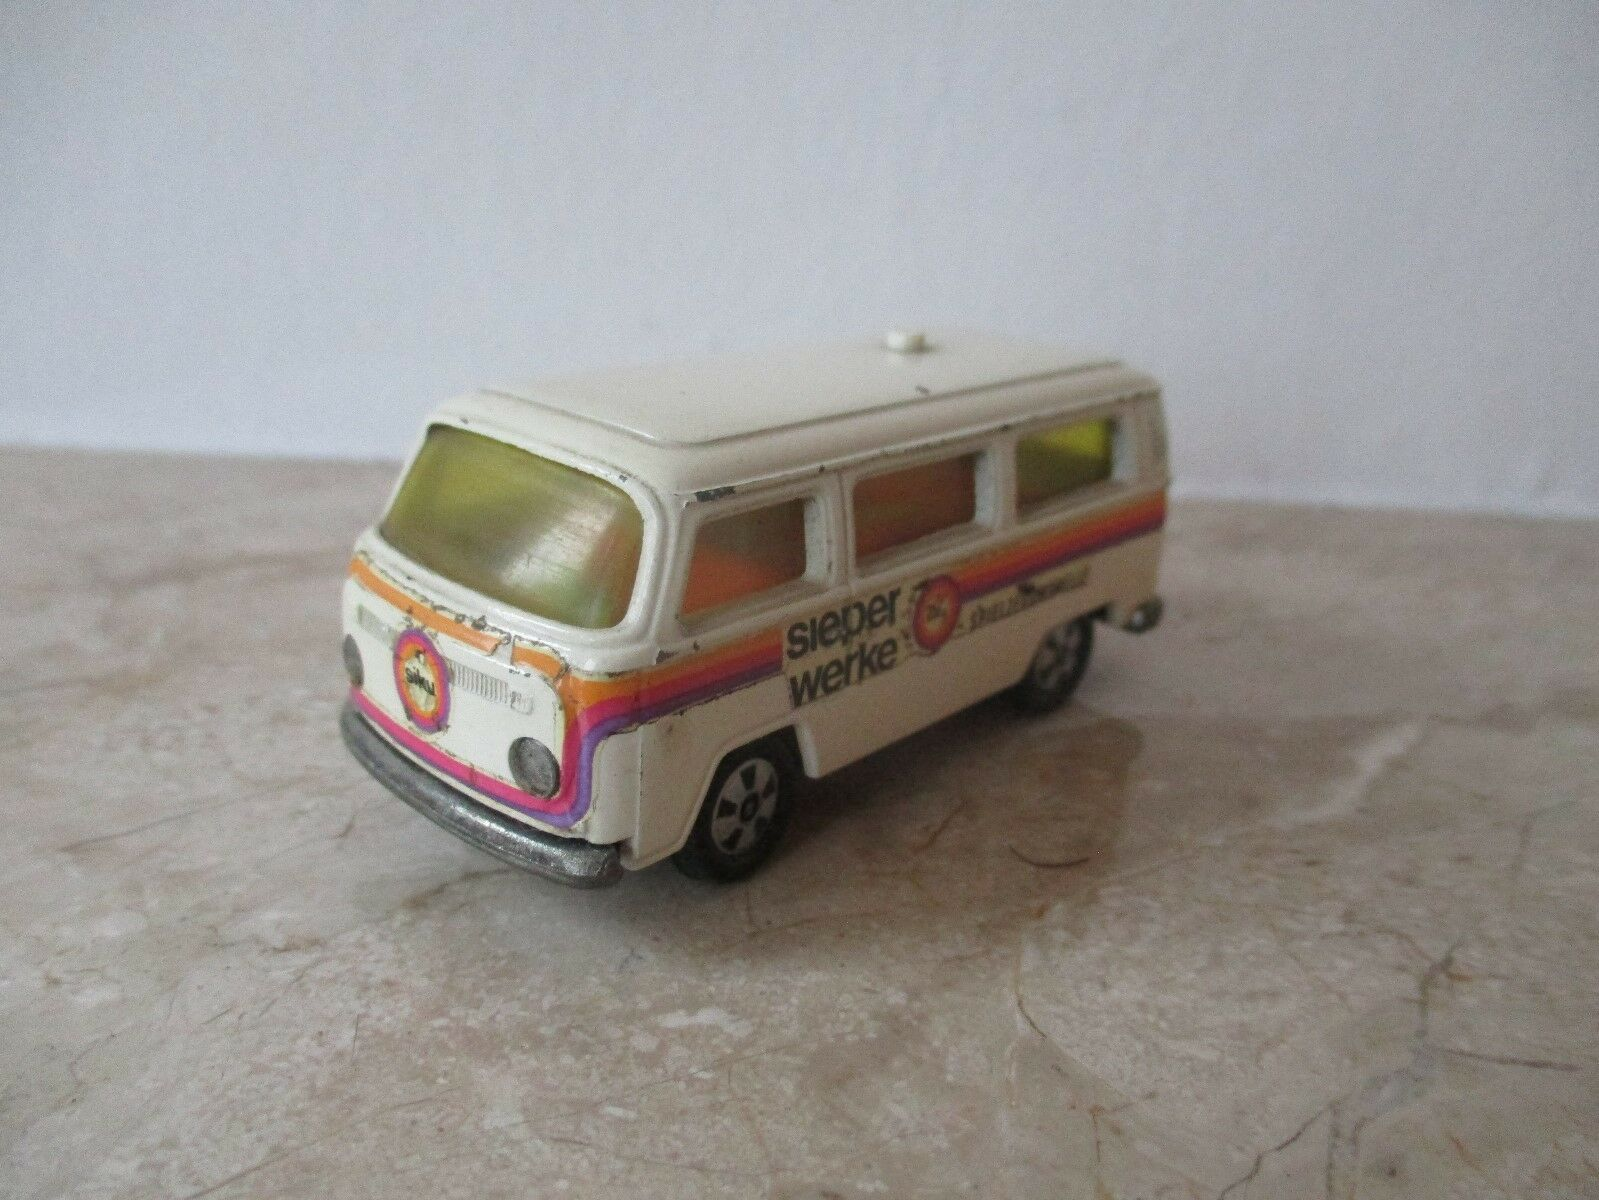 Old VW Bus V 320 Sieper works Toy Models Thin Wheels Siku Model Car